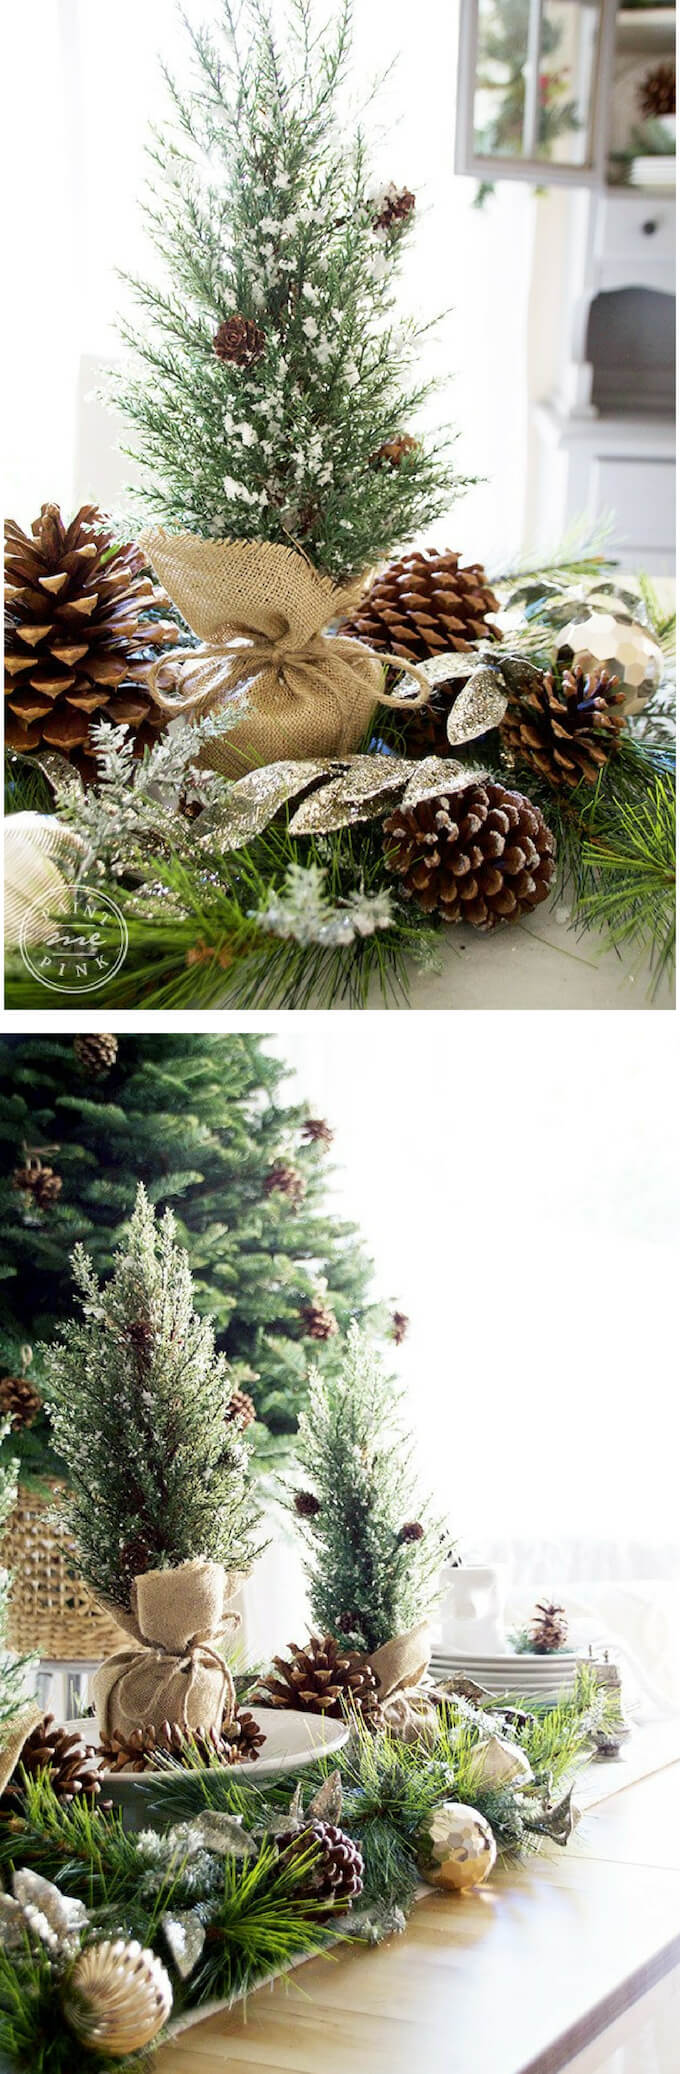 Pinecone ornaments & Wreaths | Best Elegant Christmas Centerpieces & Designs | Farmfoodfamily.com